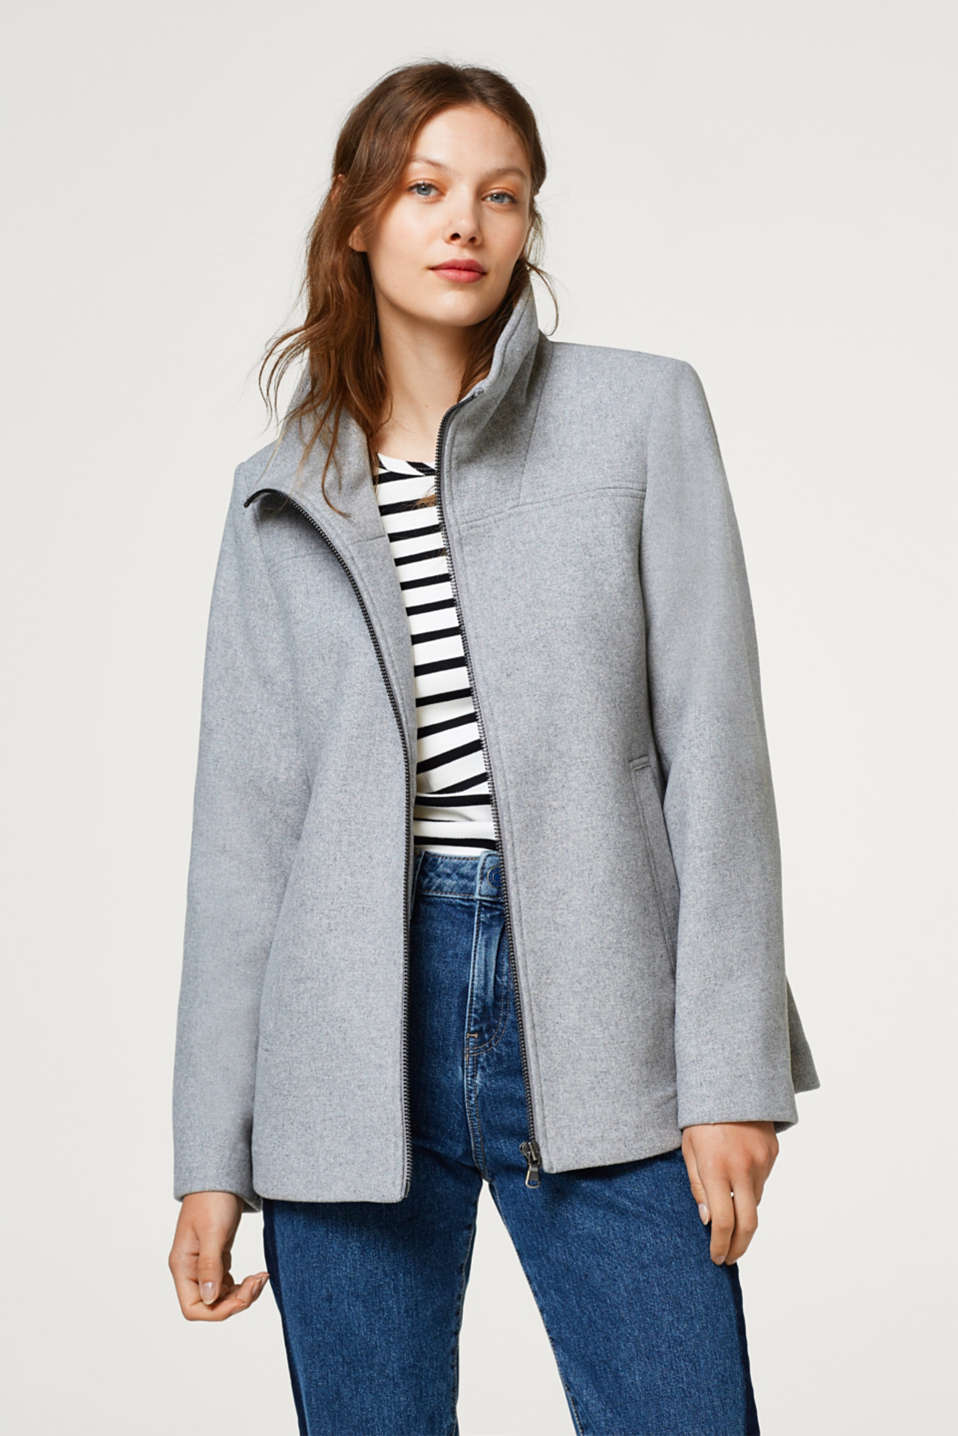 Esprit - Made of blended wool: zip-up jacket with a stand-up collar